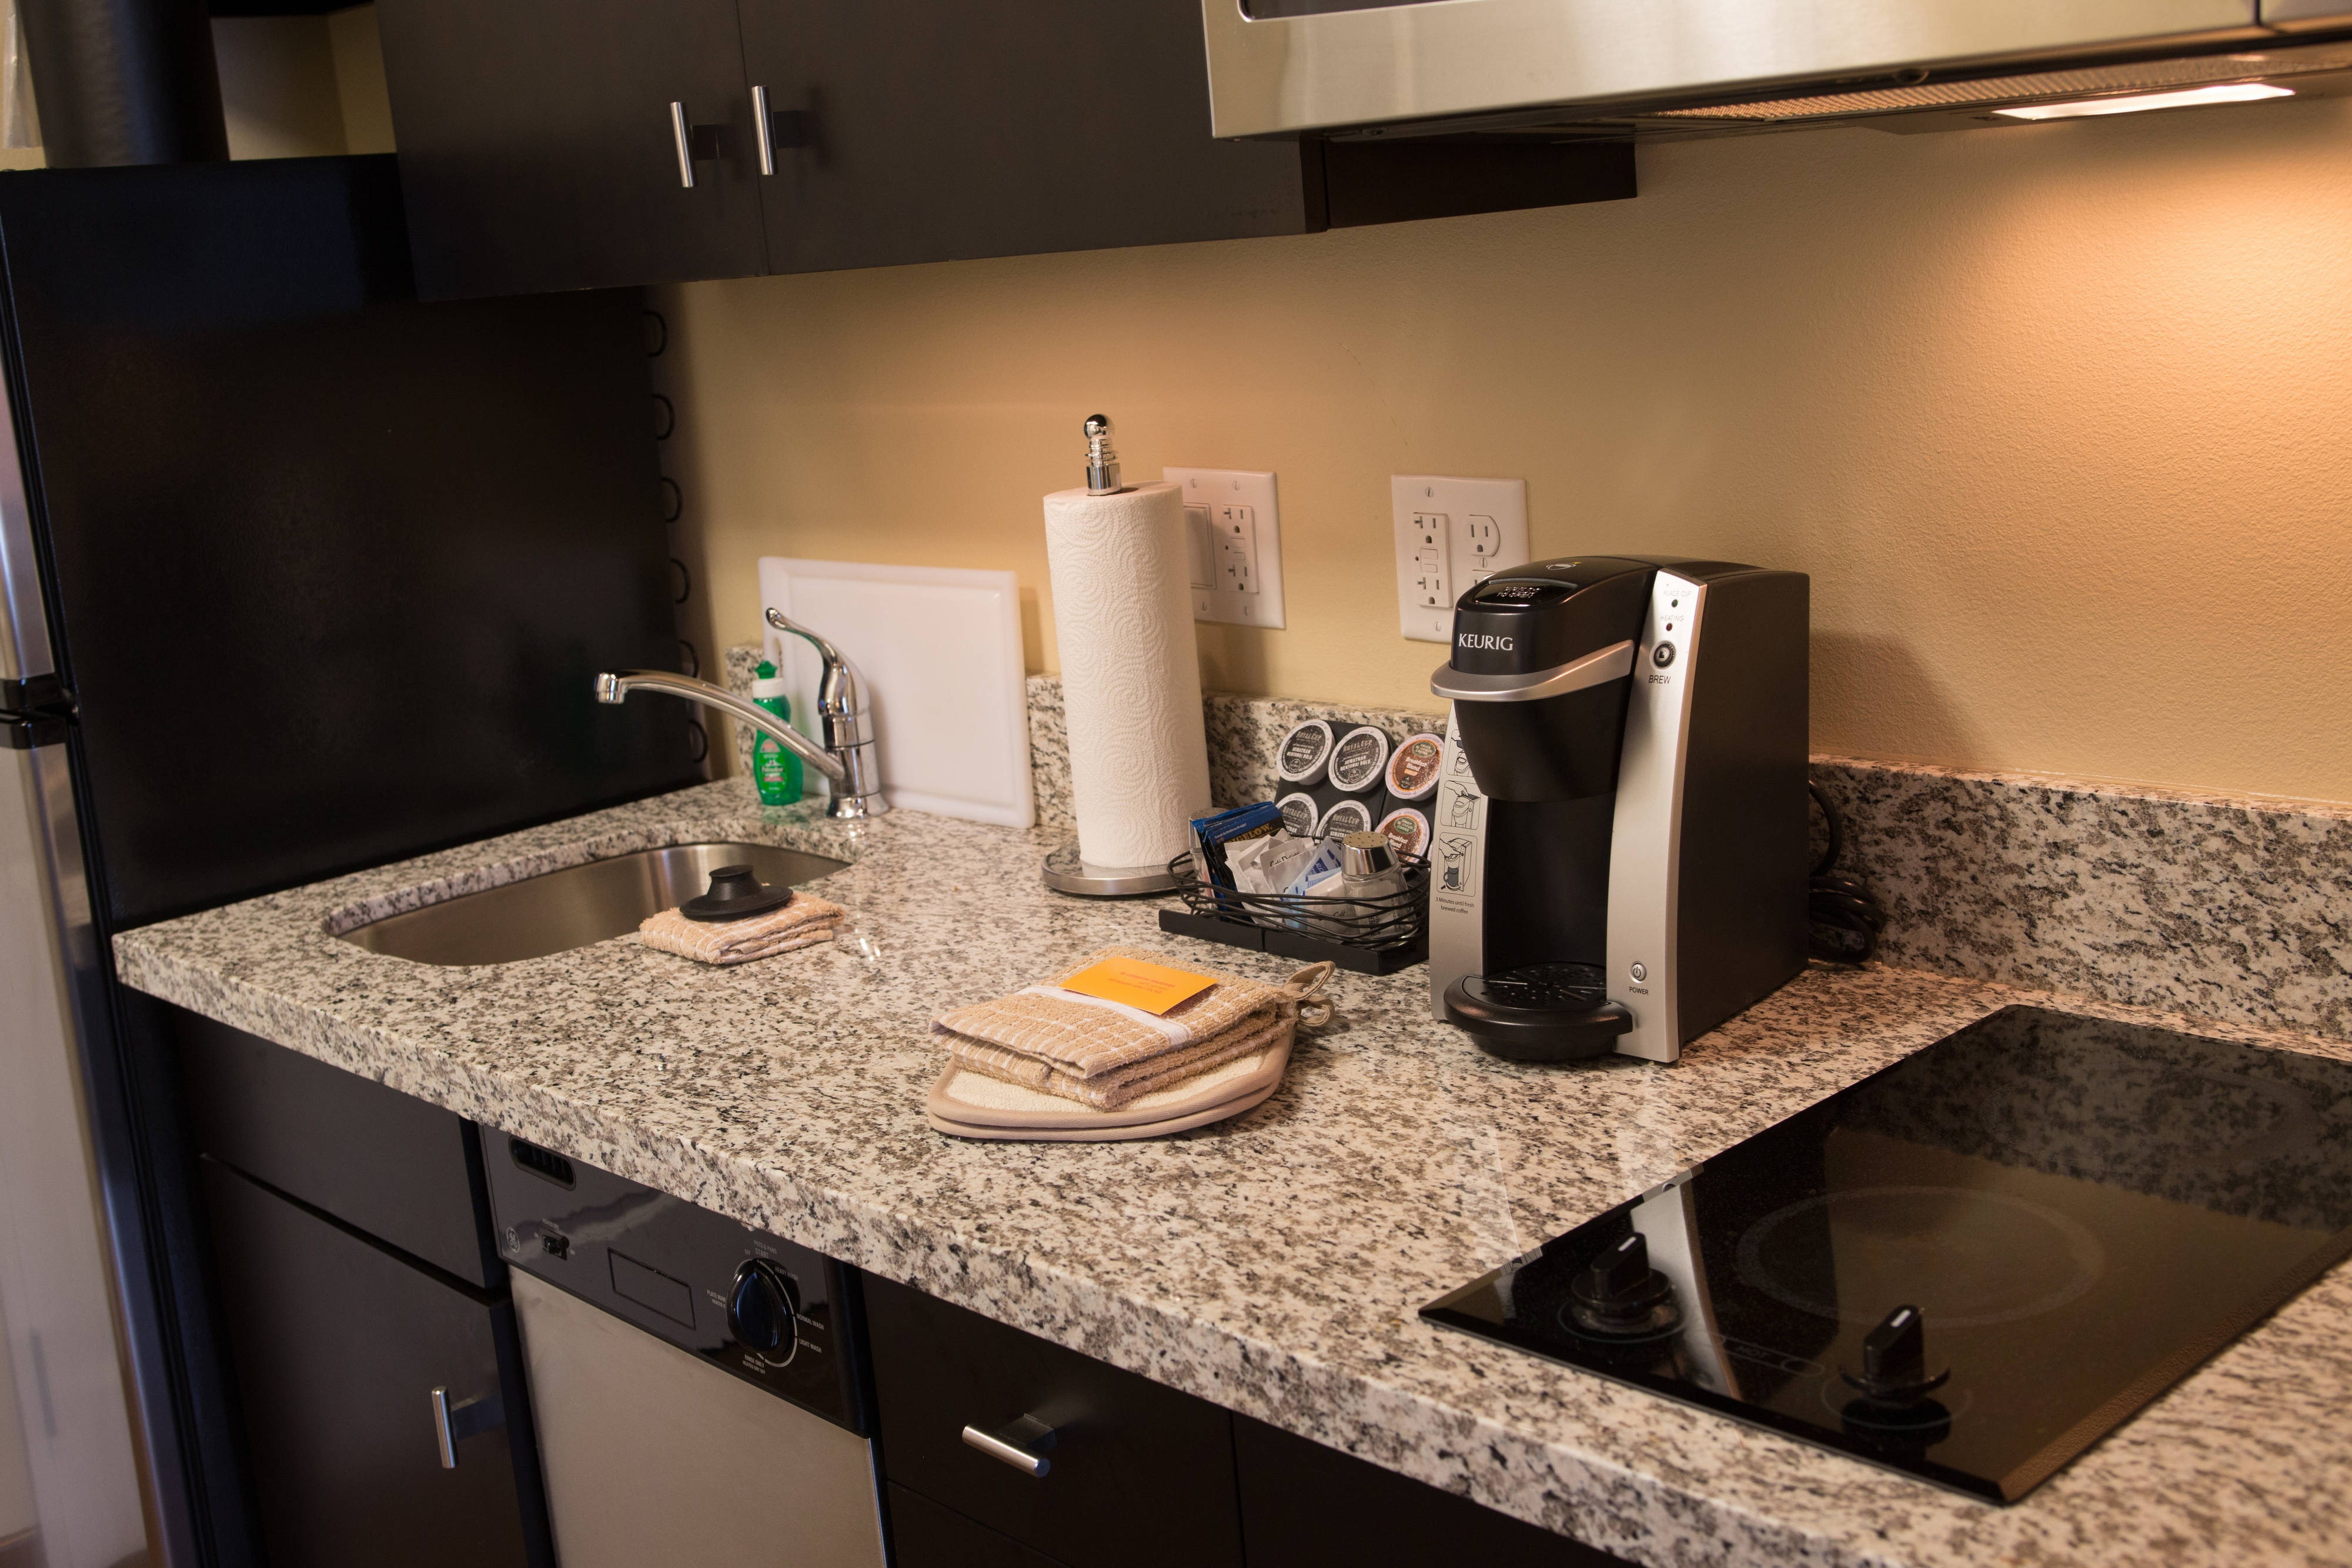 Keurig Coffeemakers in Guest rooms